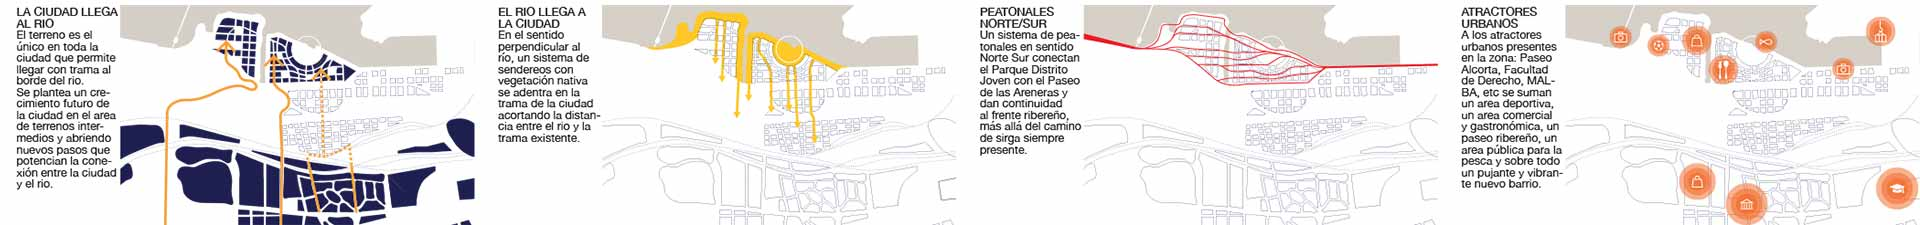 Urban schemes for analysis of the Salguero coast sector, proposal of the study of landscape architecture and urban planning NOA